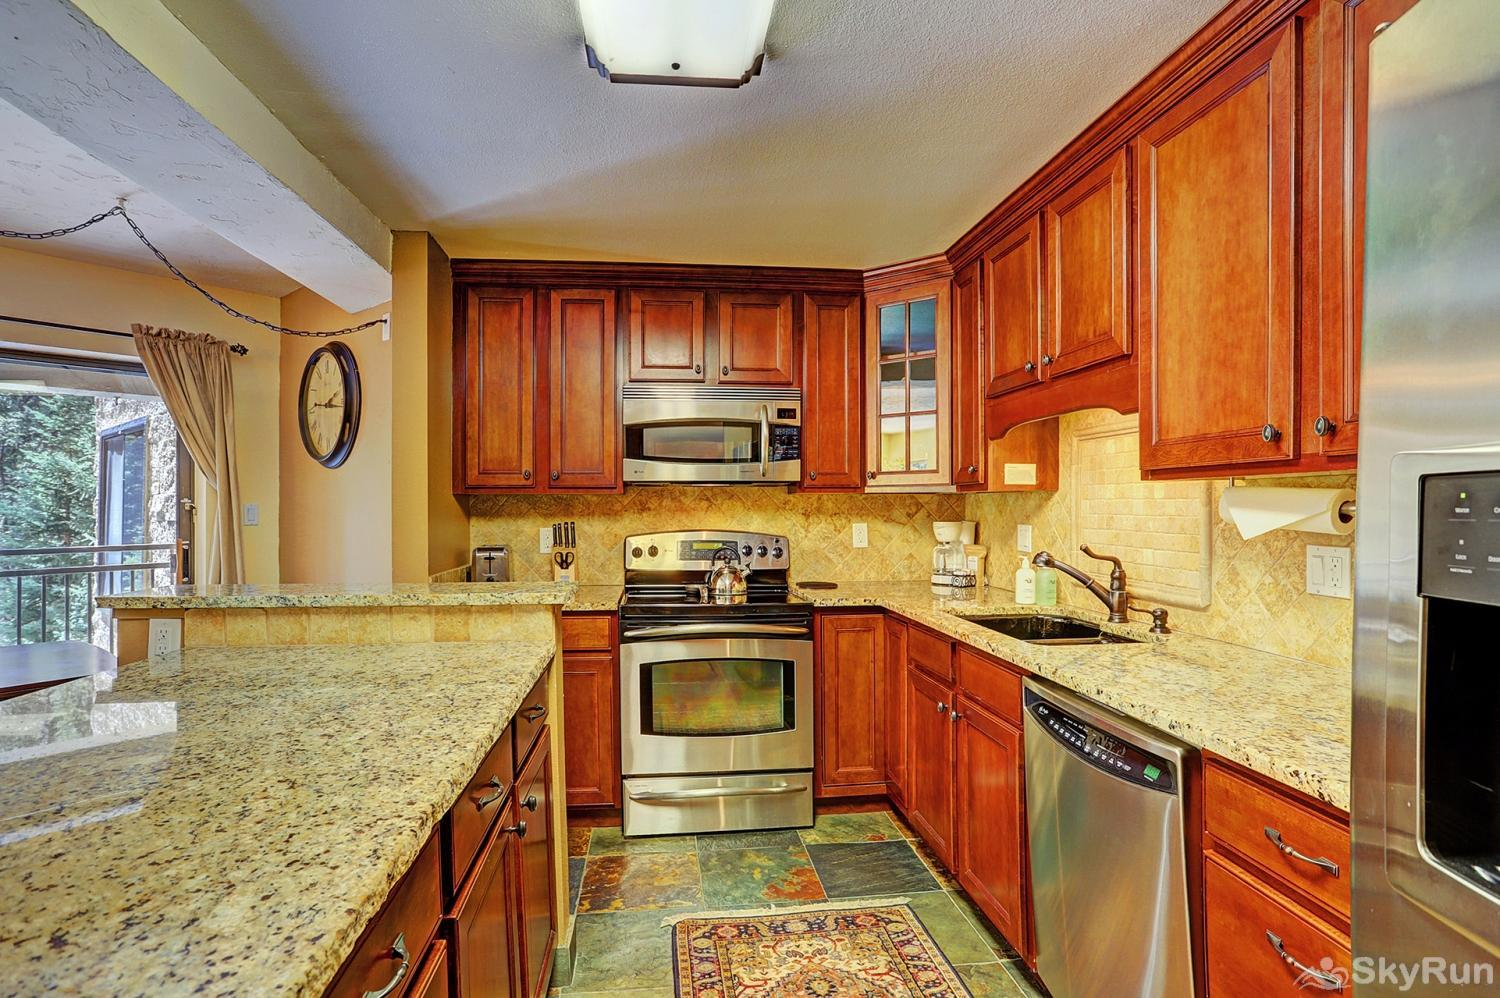 Powderhorn C202 Enjoy tasty home-cooked meals from the comforts of a fully equipped kitchen